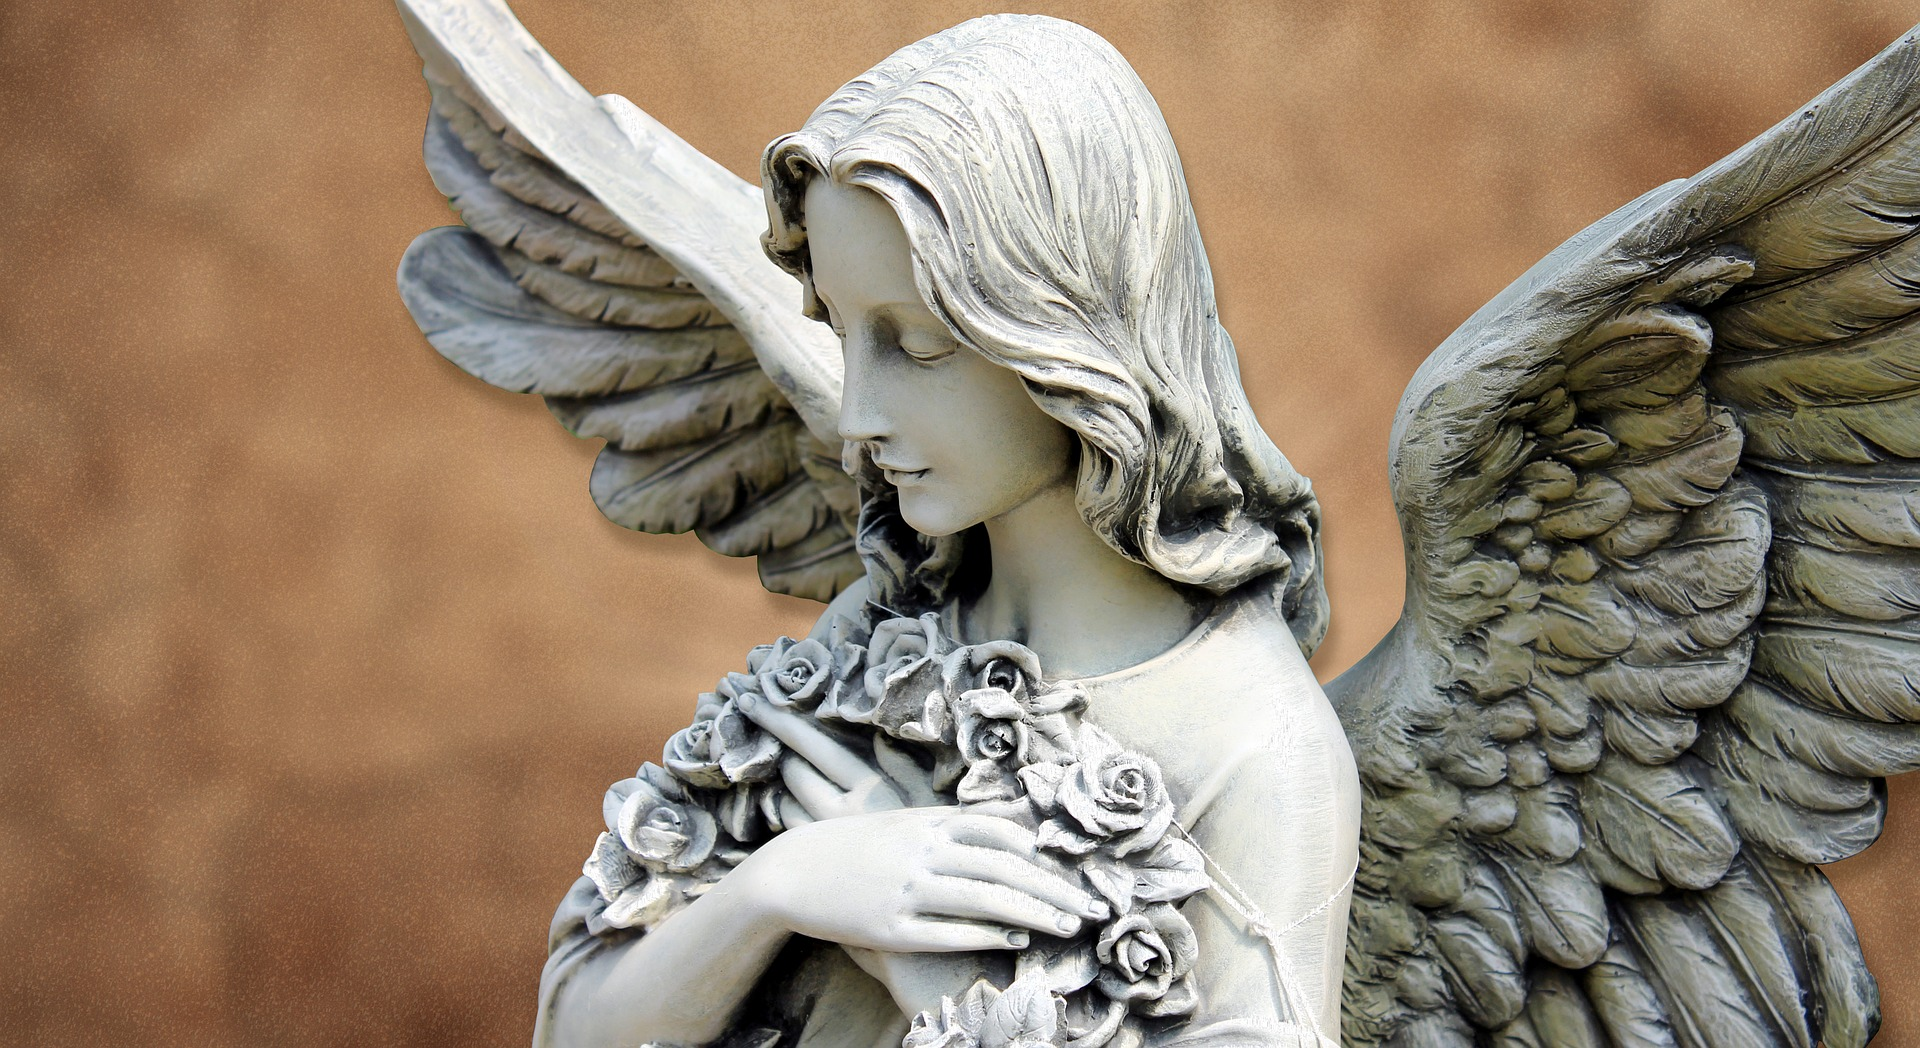 Heavenly Vision Channeled Through Human Angels